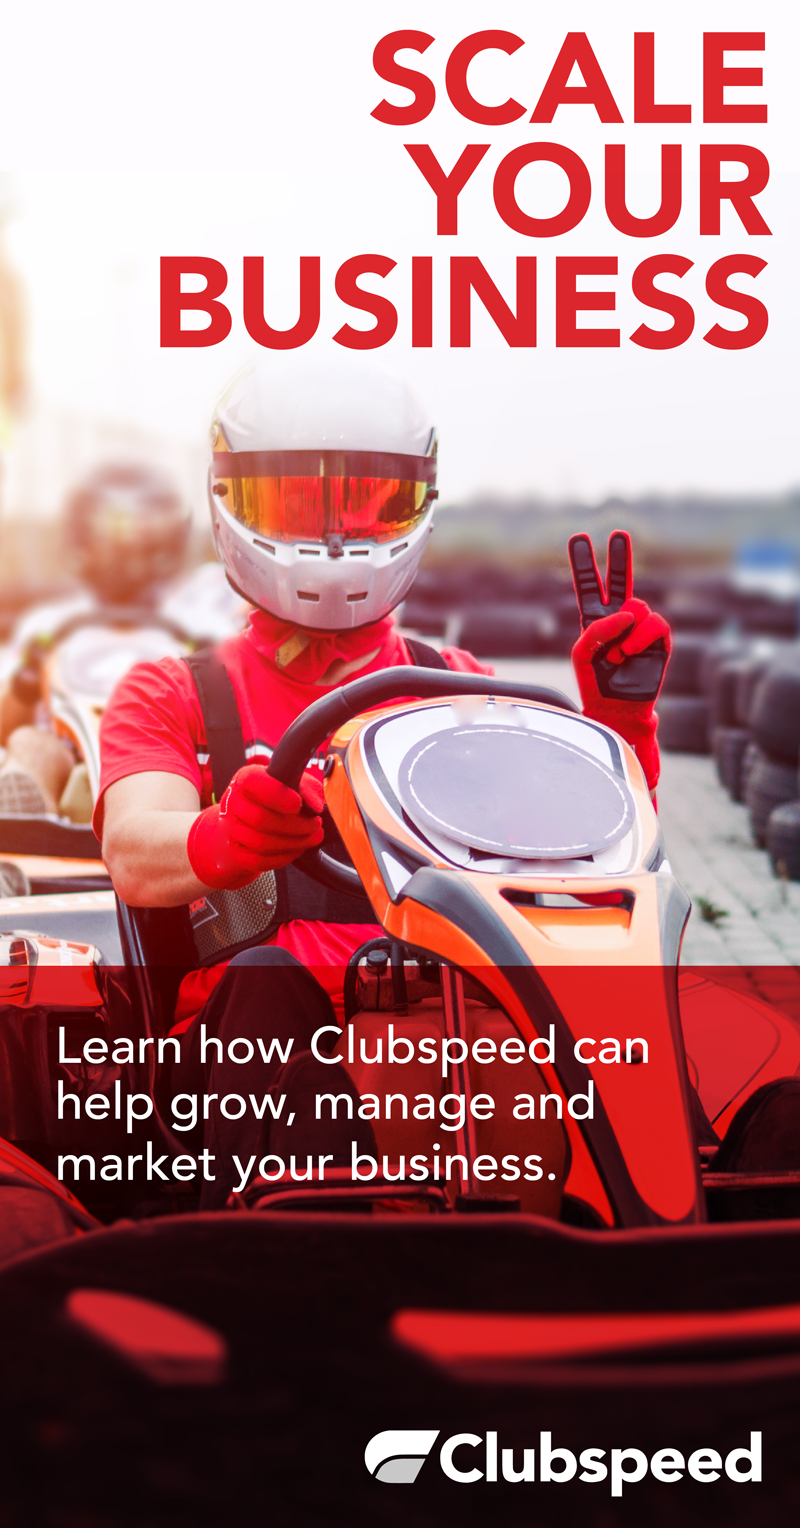 Scale your business with Clubspeed.